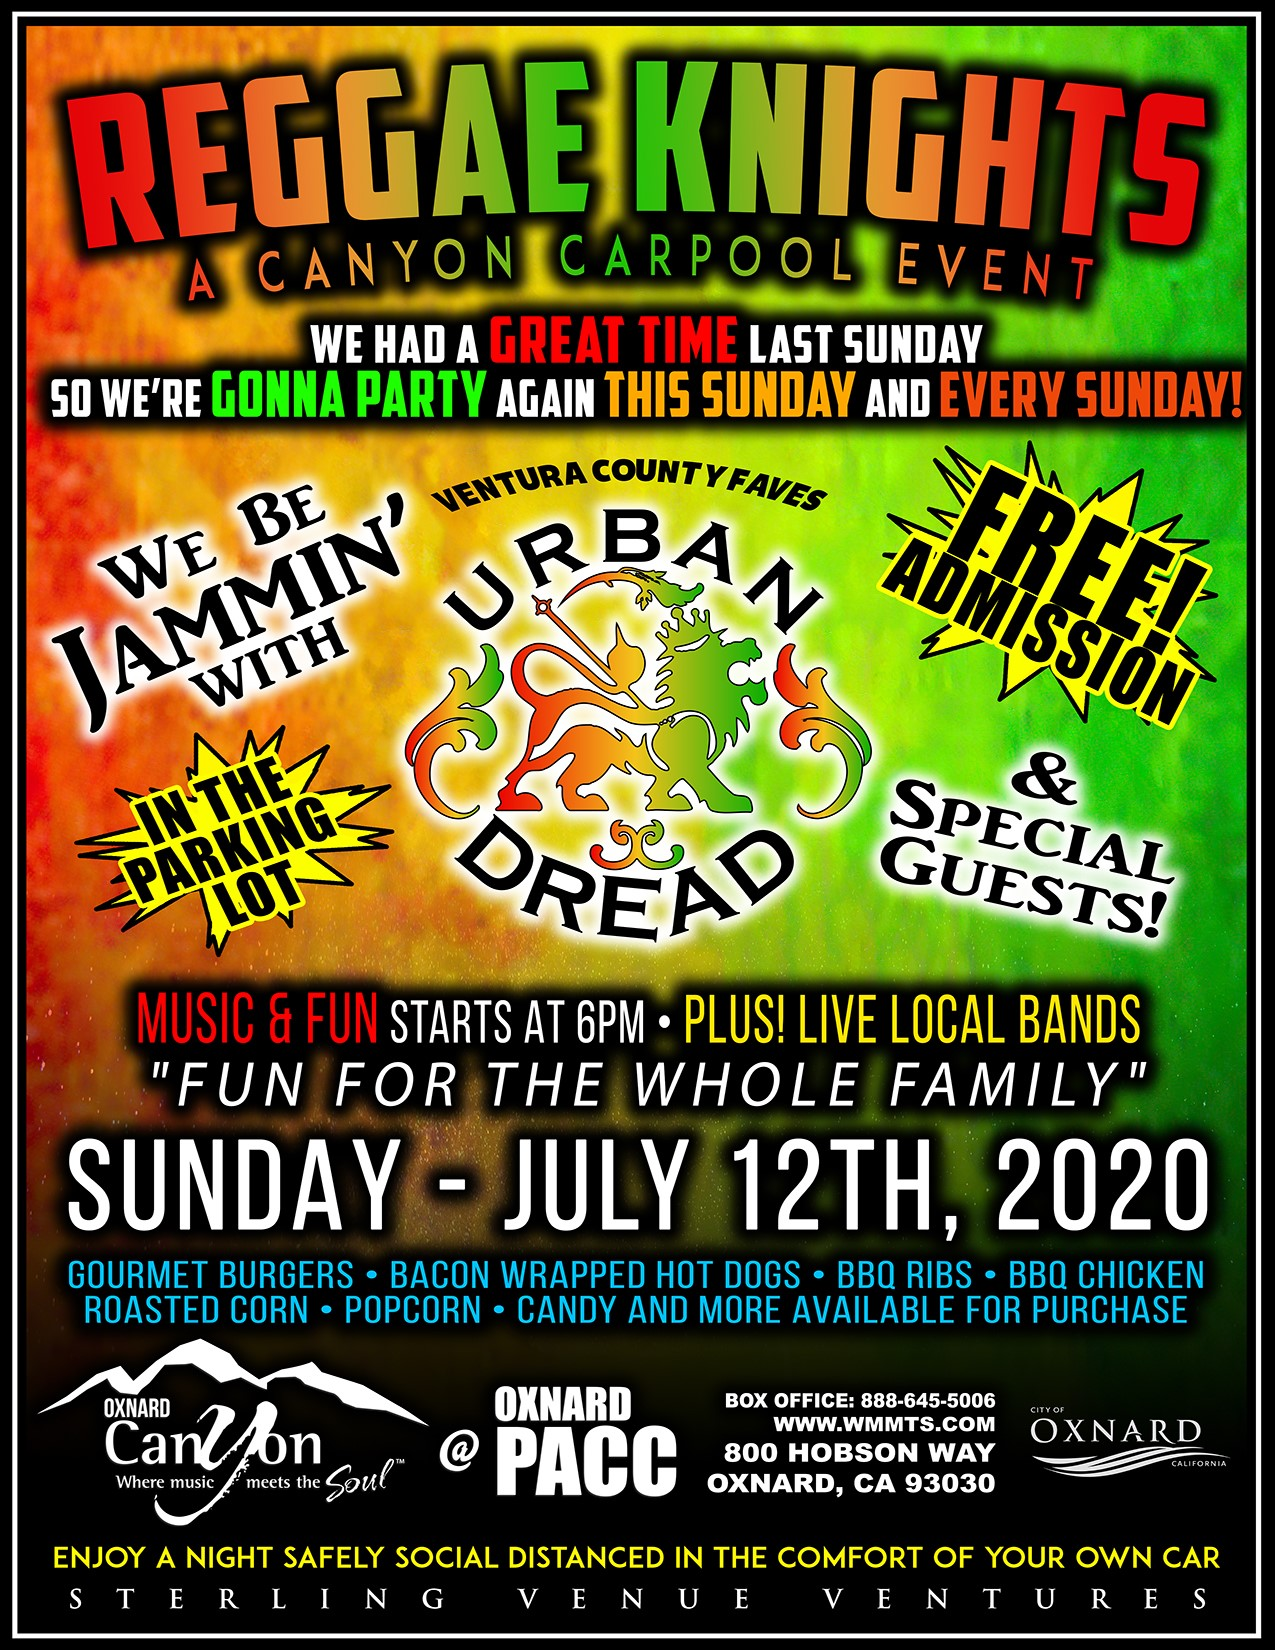 Reggae Knights – A Canyon Carpool Event at the Oxnard PACC